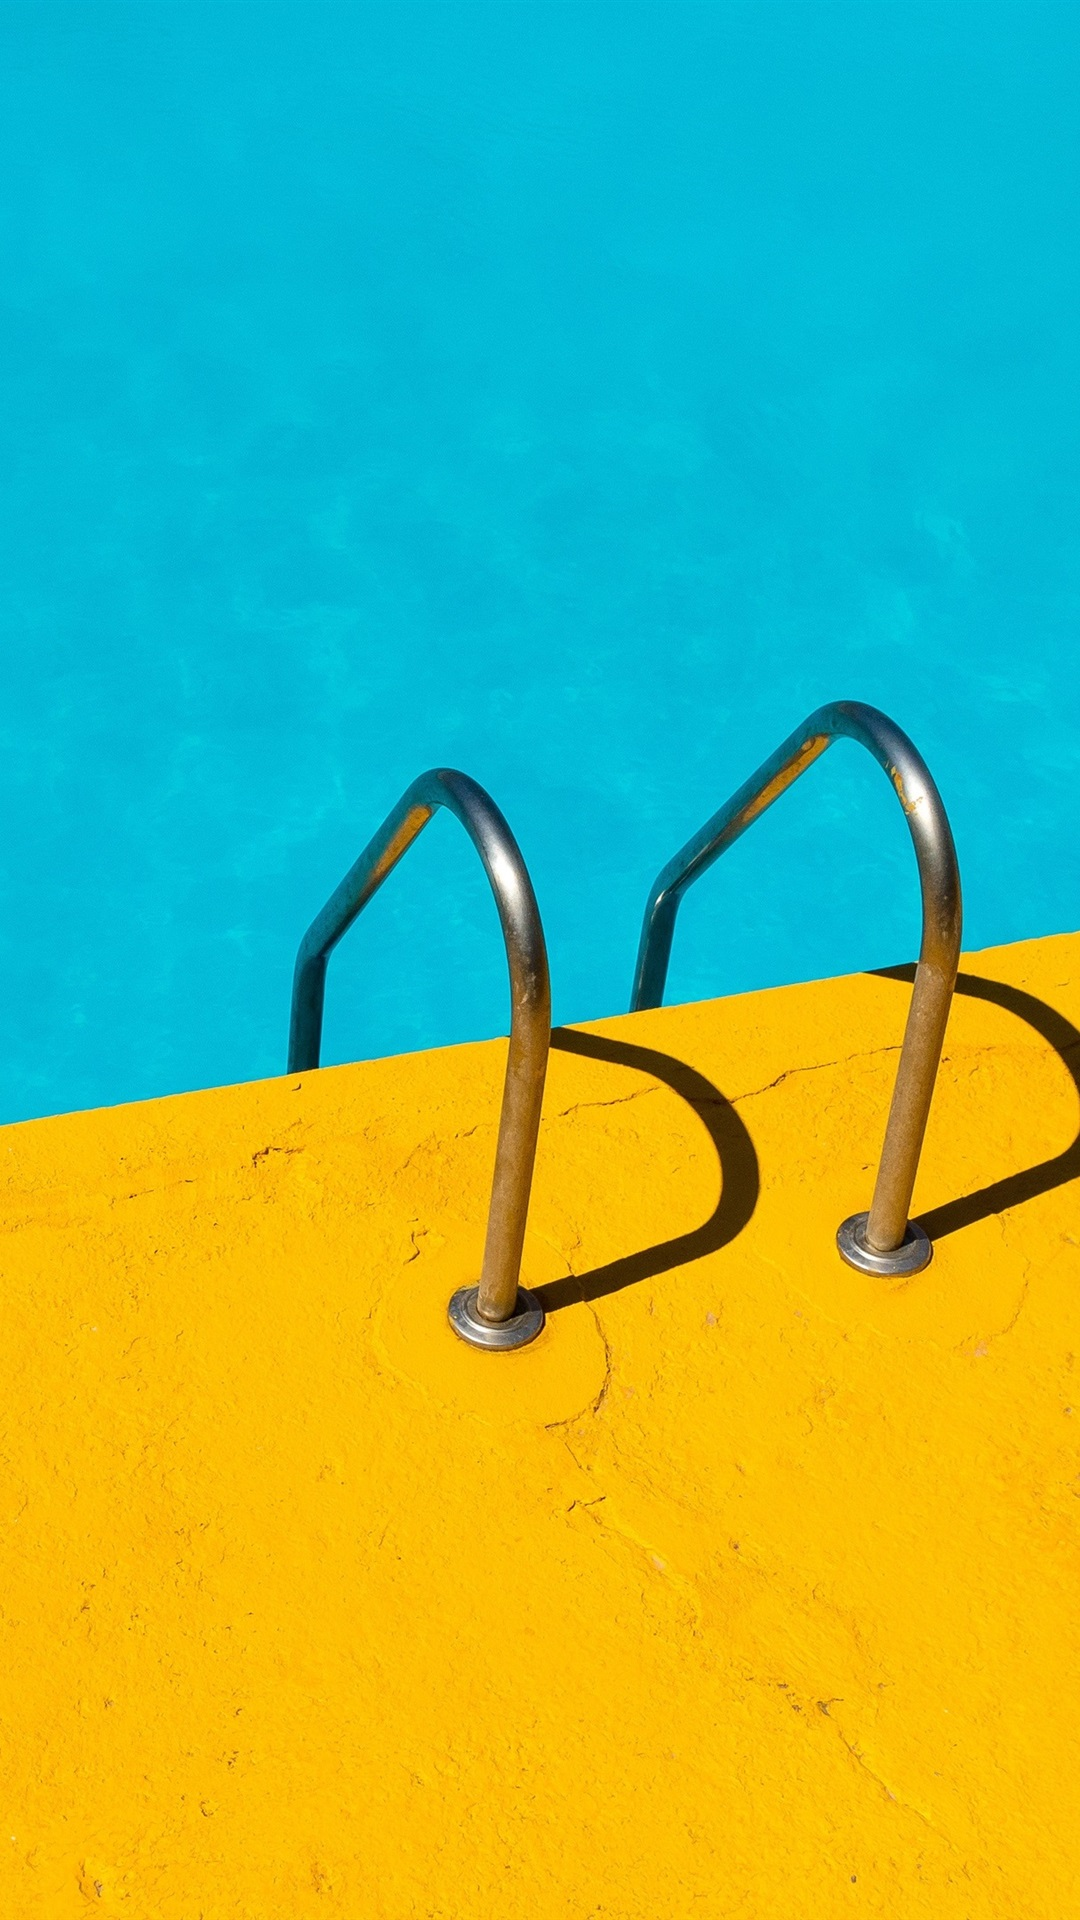 Handrail Swim Pool Blue And Yellow 1080x1920 Iphone 8 7 6 6s Plus Wallpaper Background Picture Image